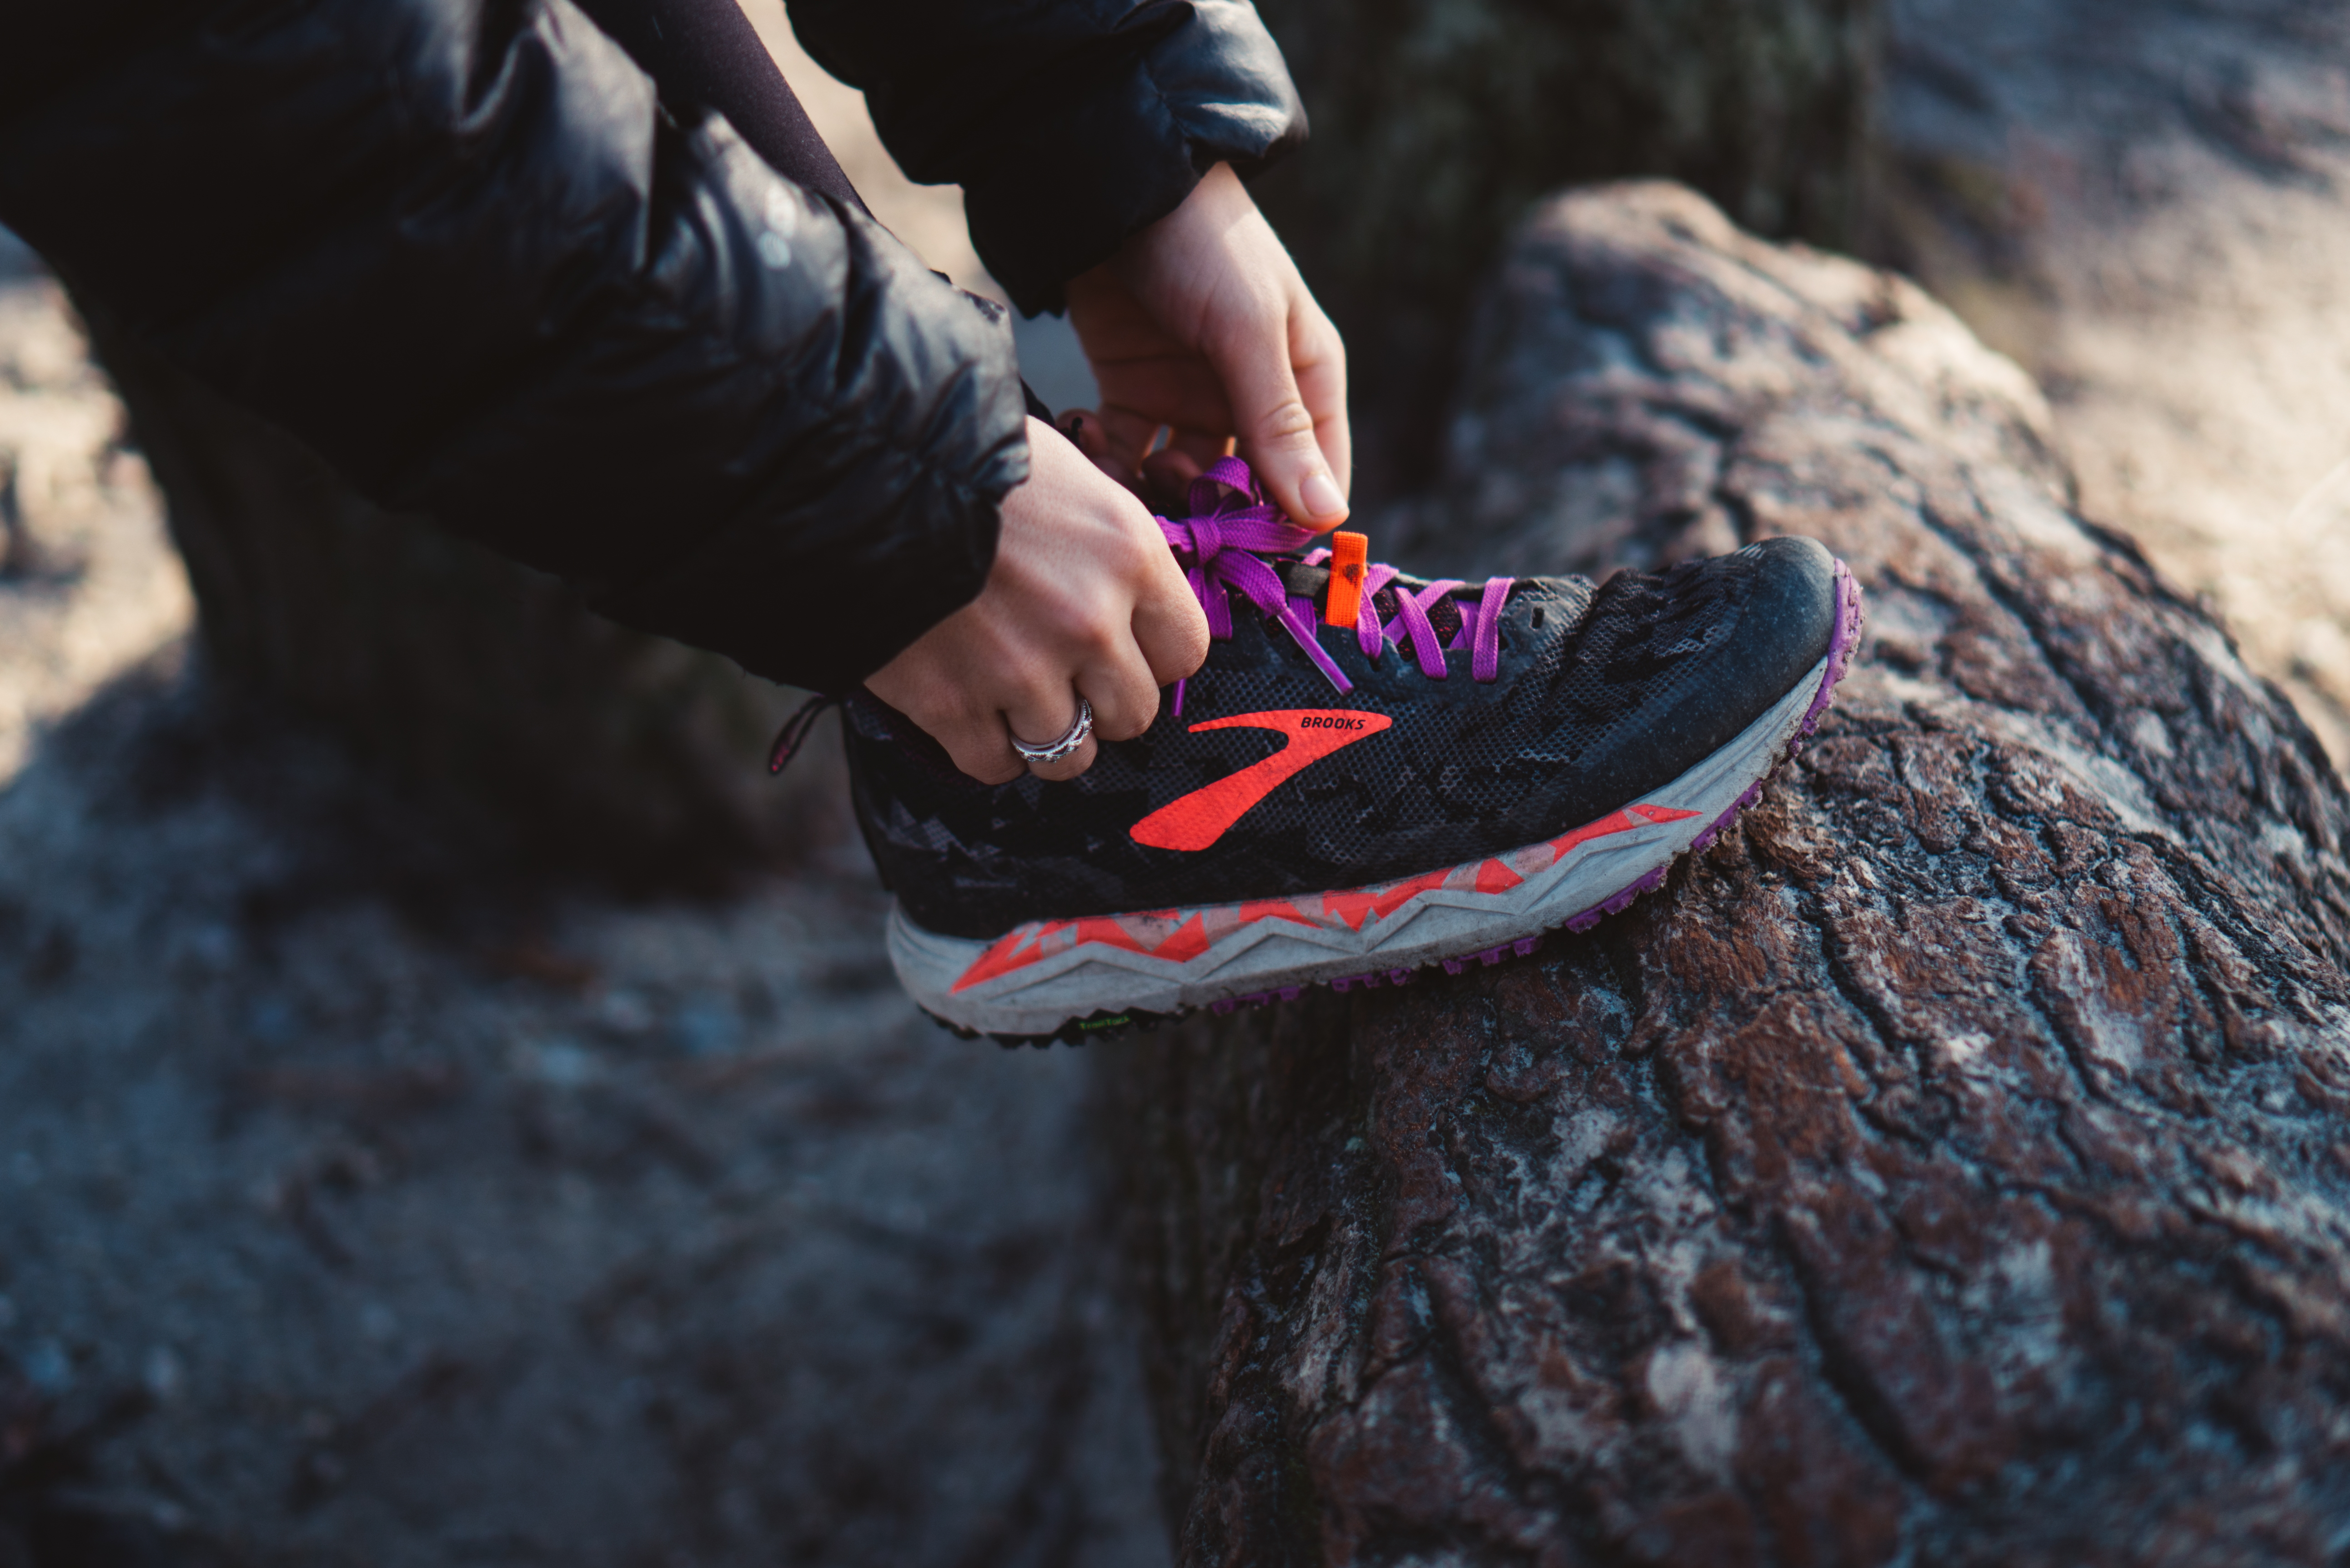 569f7e1e70825 The Caldera 3 finally feels like a fully fledged trail runner with the best  qualities of every iteration of the series. In addition